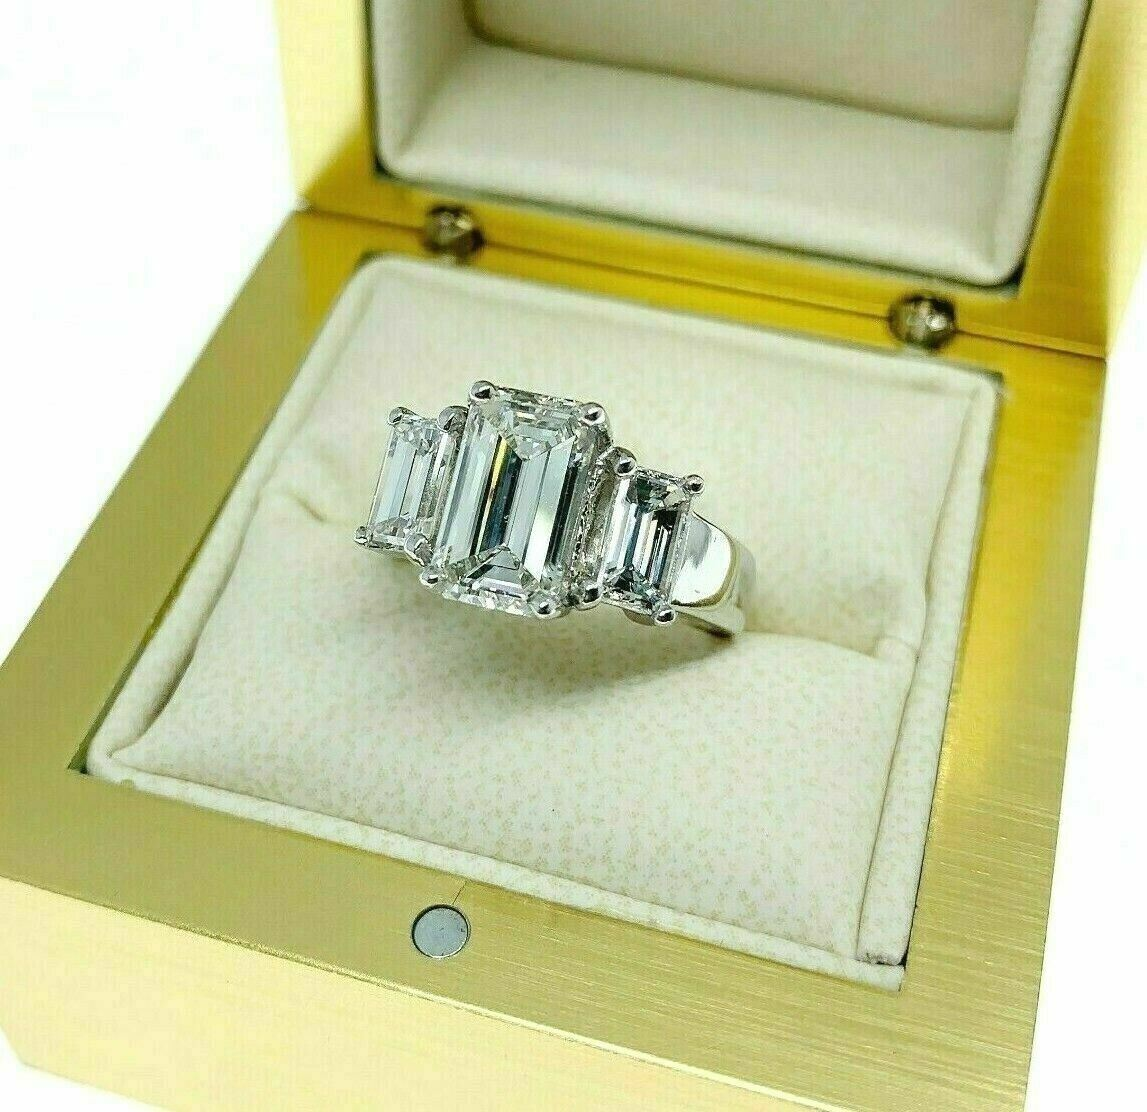 3.18 Carats t.w. 3 Stone Emerald Cut Diamond Wedding Ring GIA 2.02 H VVS2 Center